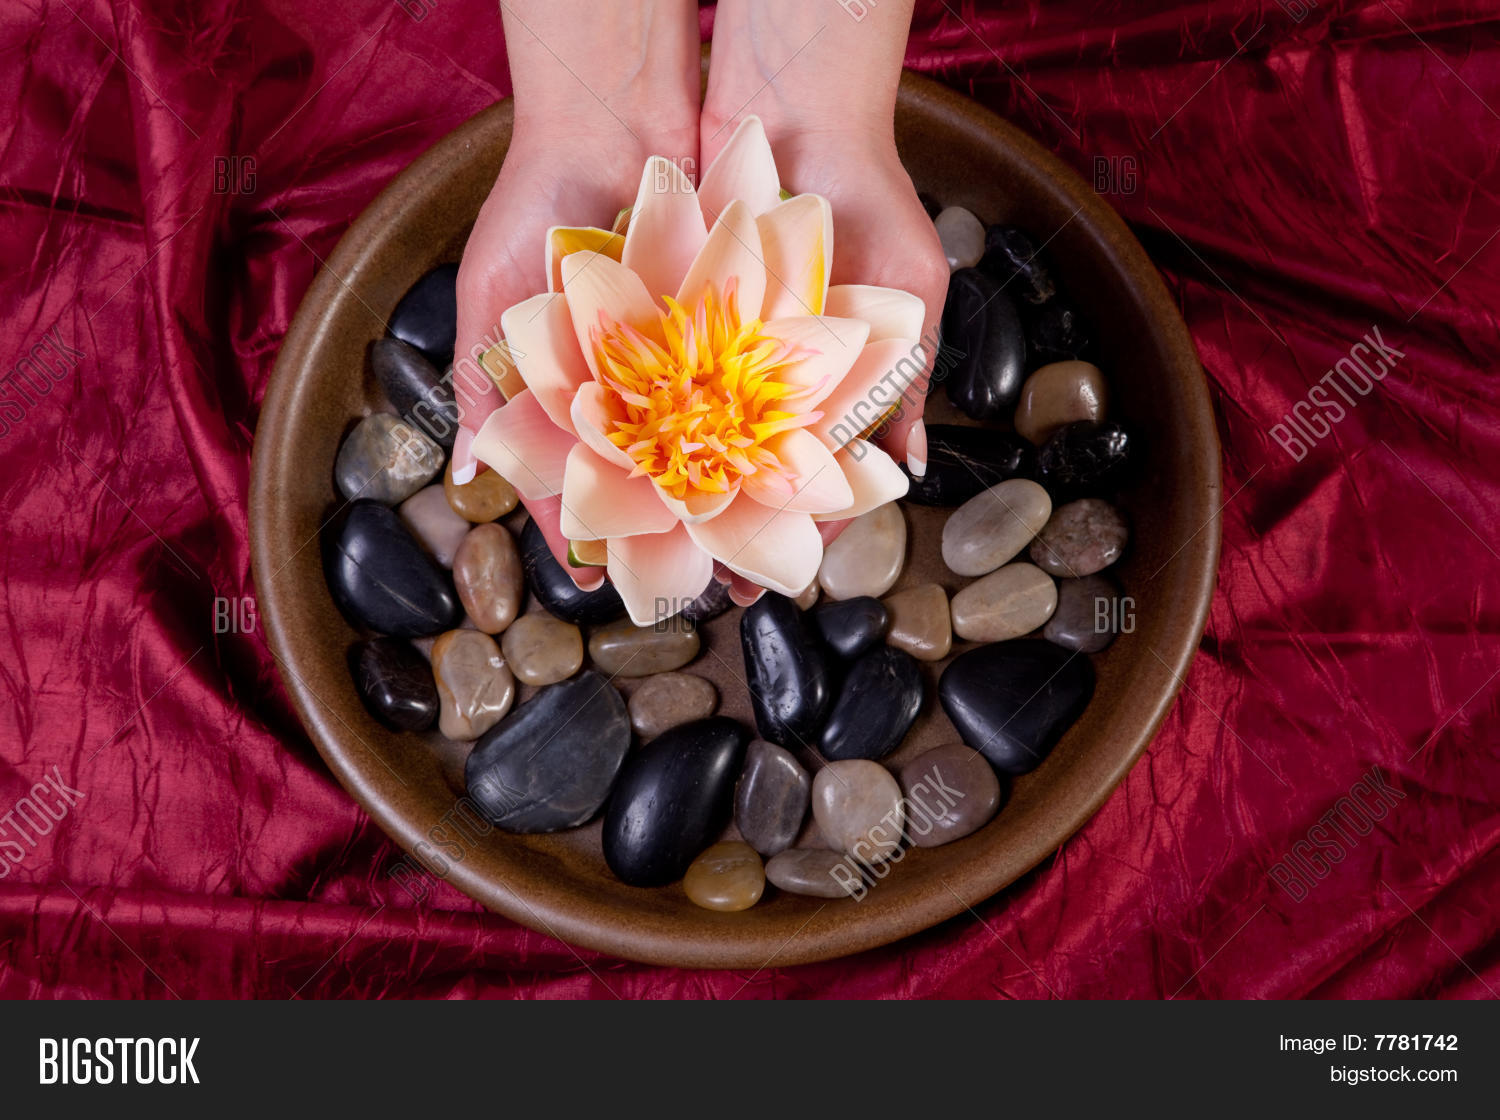 Hands Holding Lotus Image Photo Free Trial Bigstock